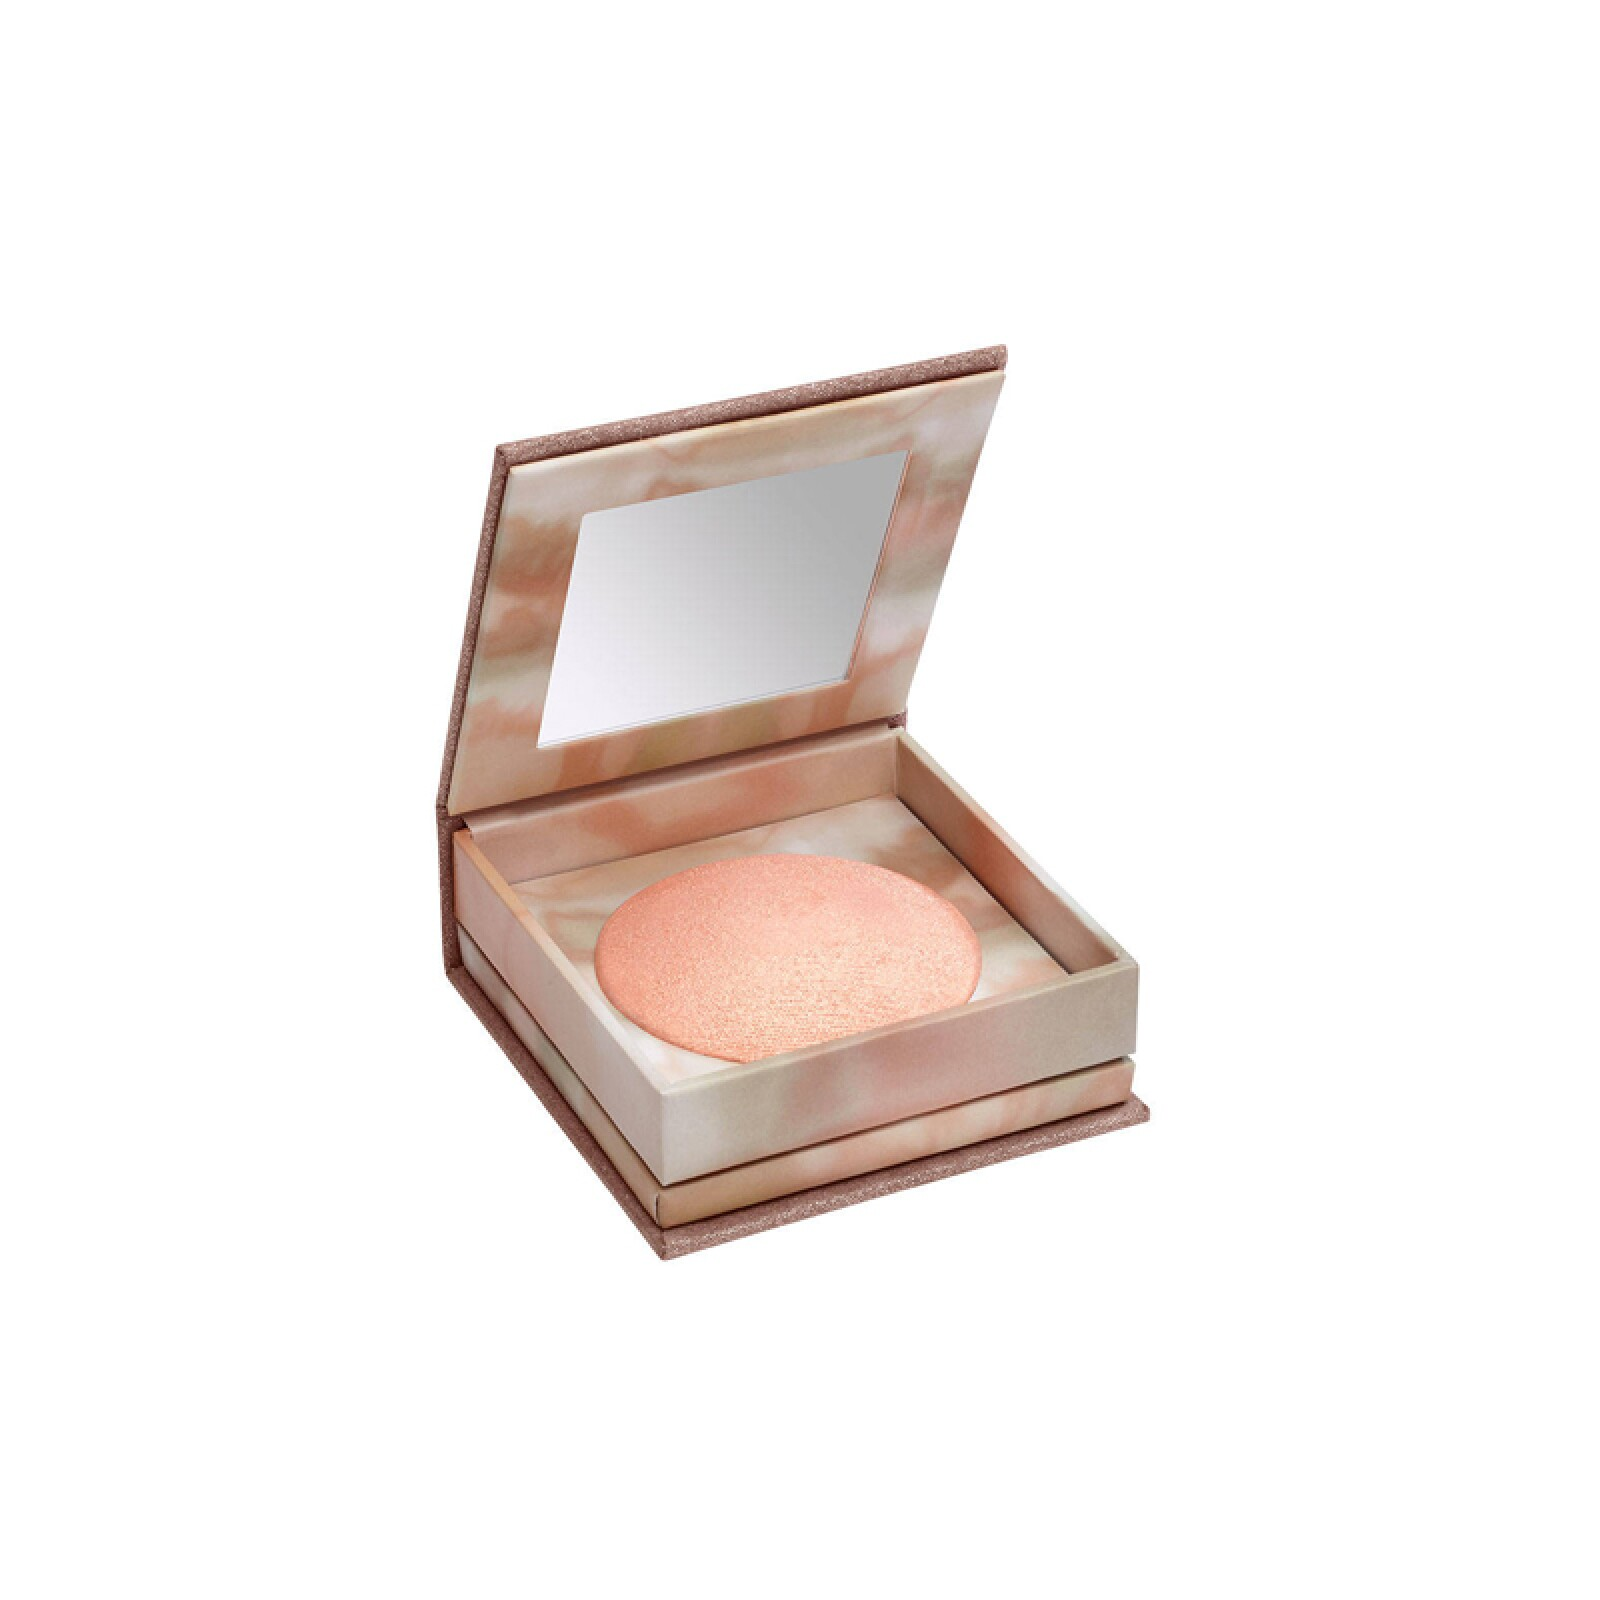 Urban-Decay-Naked-Illuminated-Shimmering-Powder-for-Face-and-Body.jpg